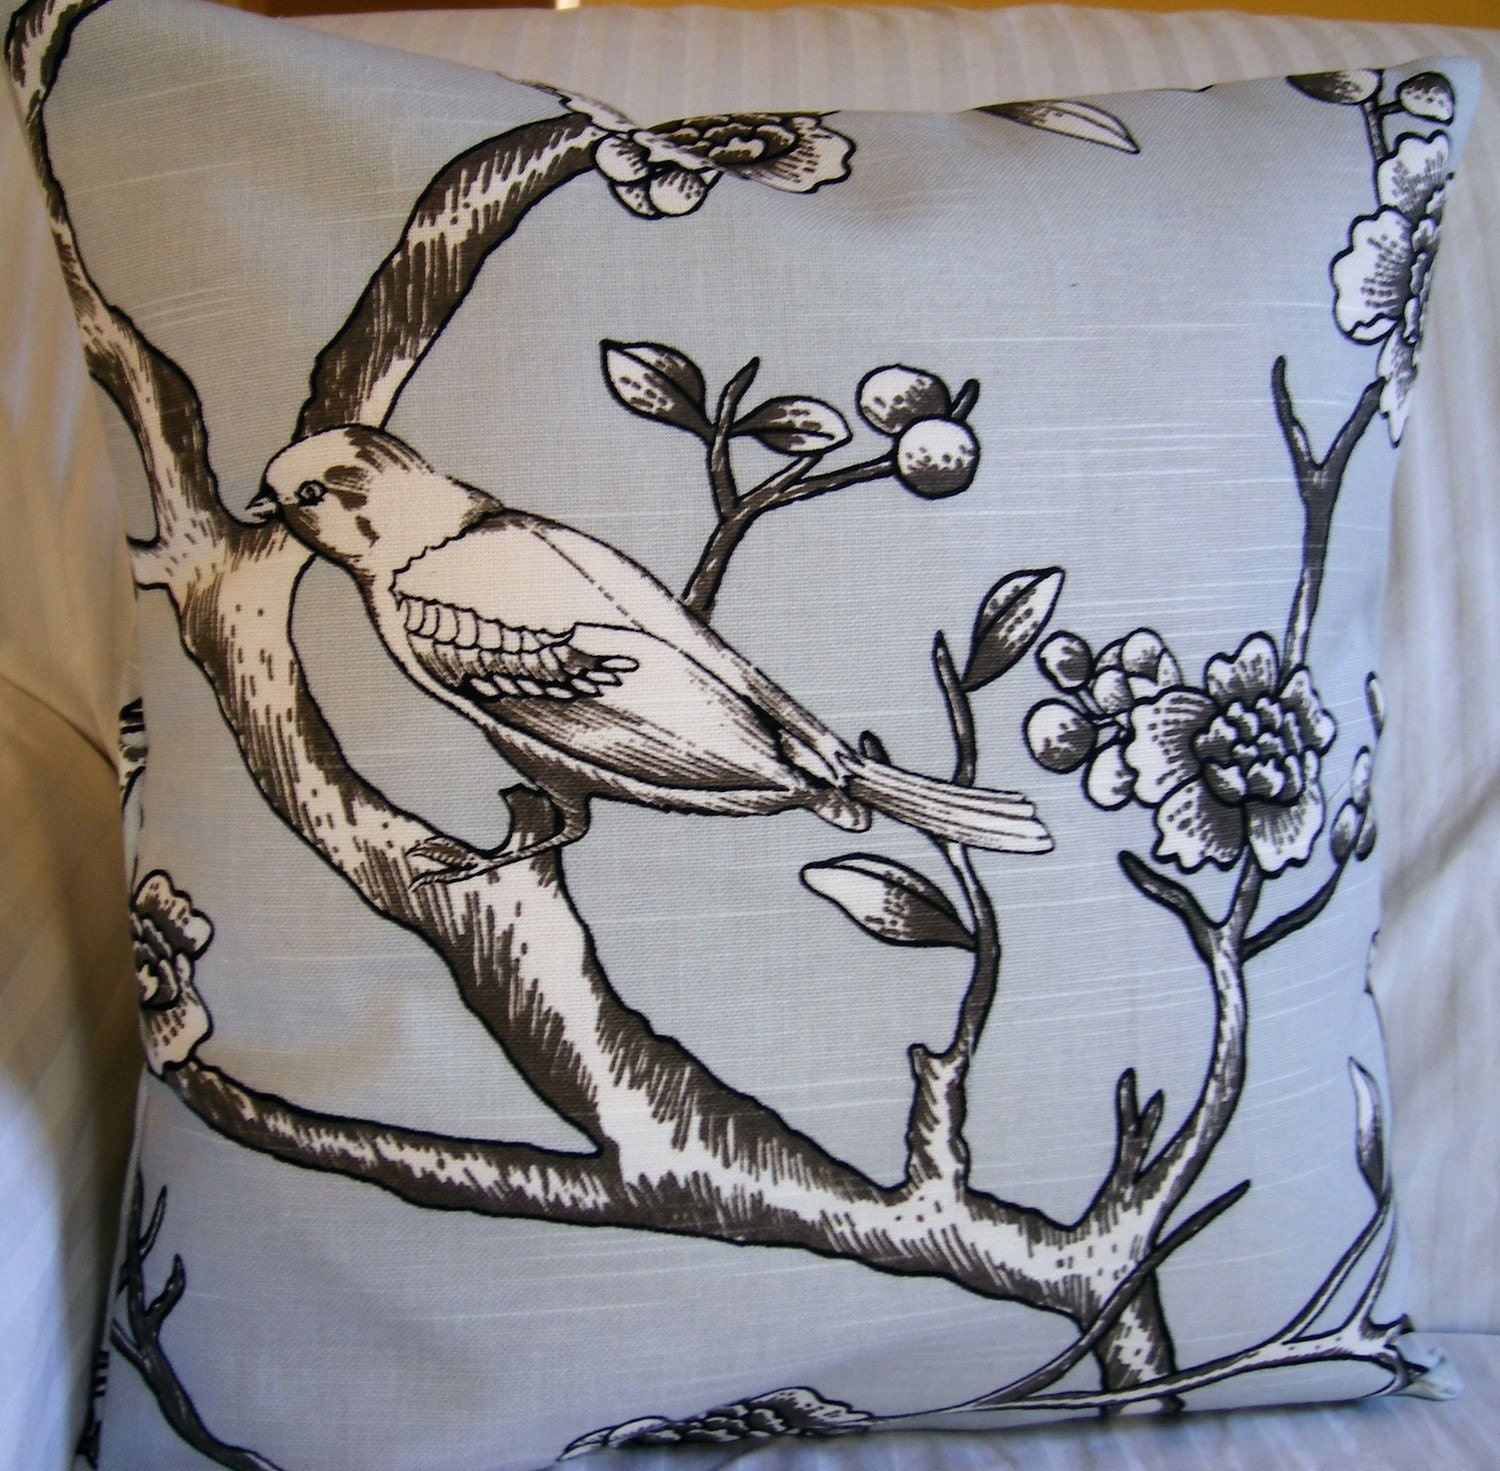 Pillow, Throw pillow cover, cushion cover, outdoor pillow 16x16 handmade with Designer Fabric Sky Blue and Gray Birds and Branches